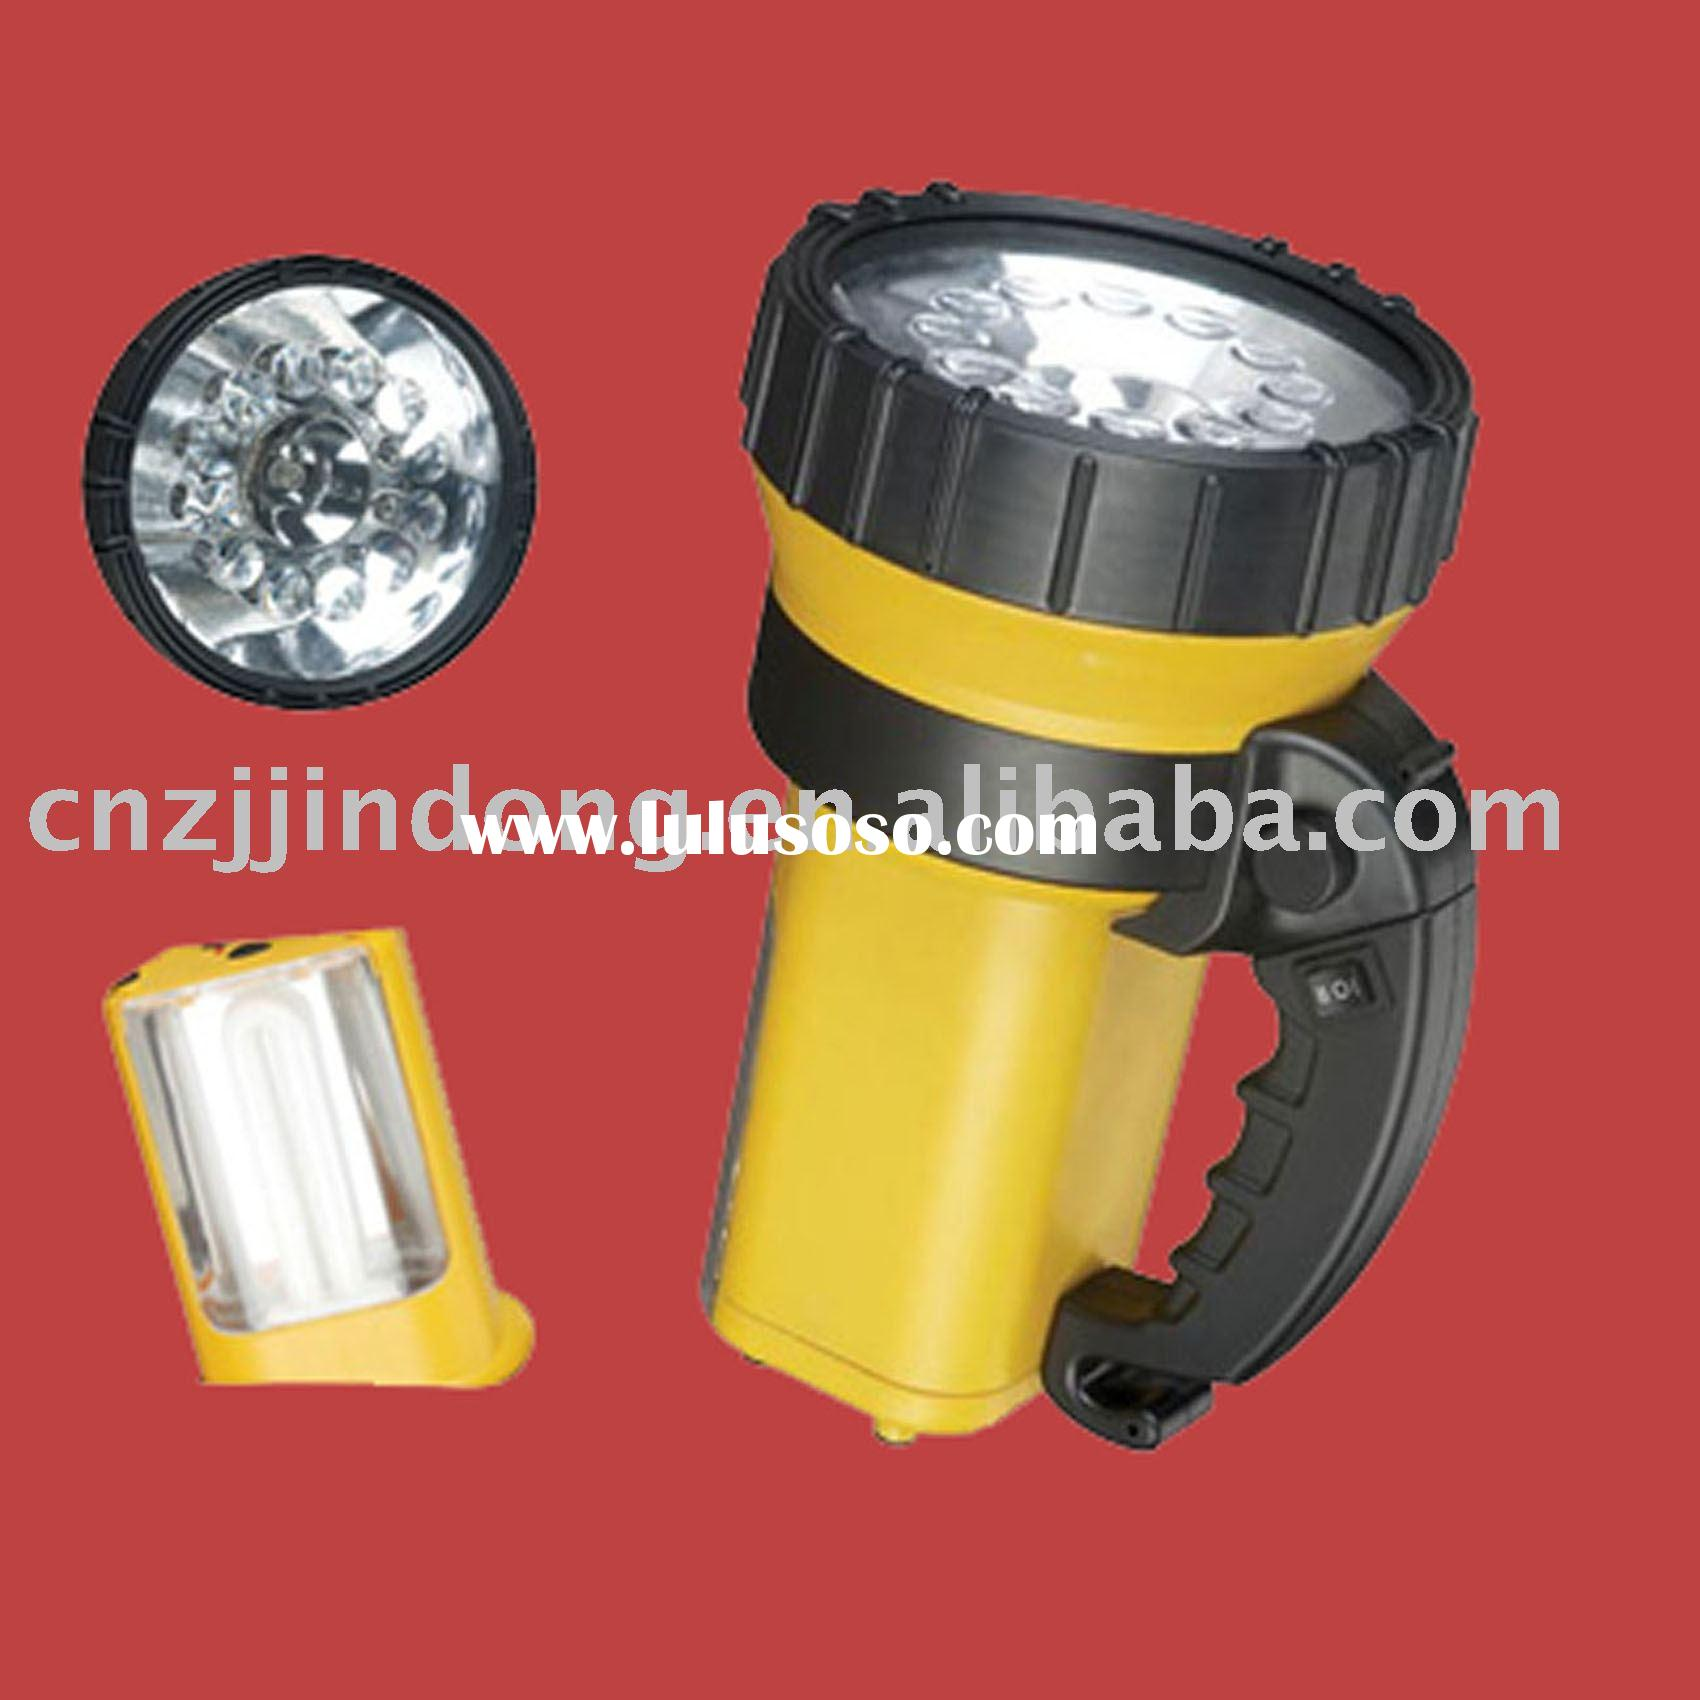 led portable spotlight;handheld led spotlight ;led spotlight